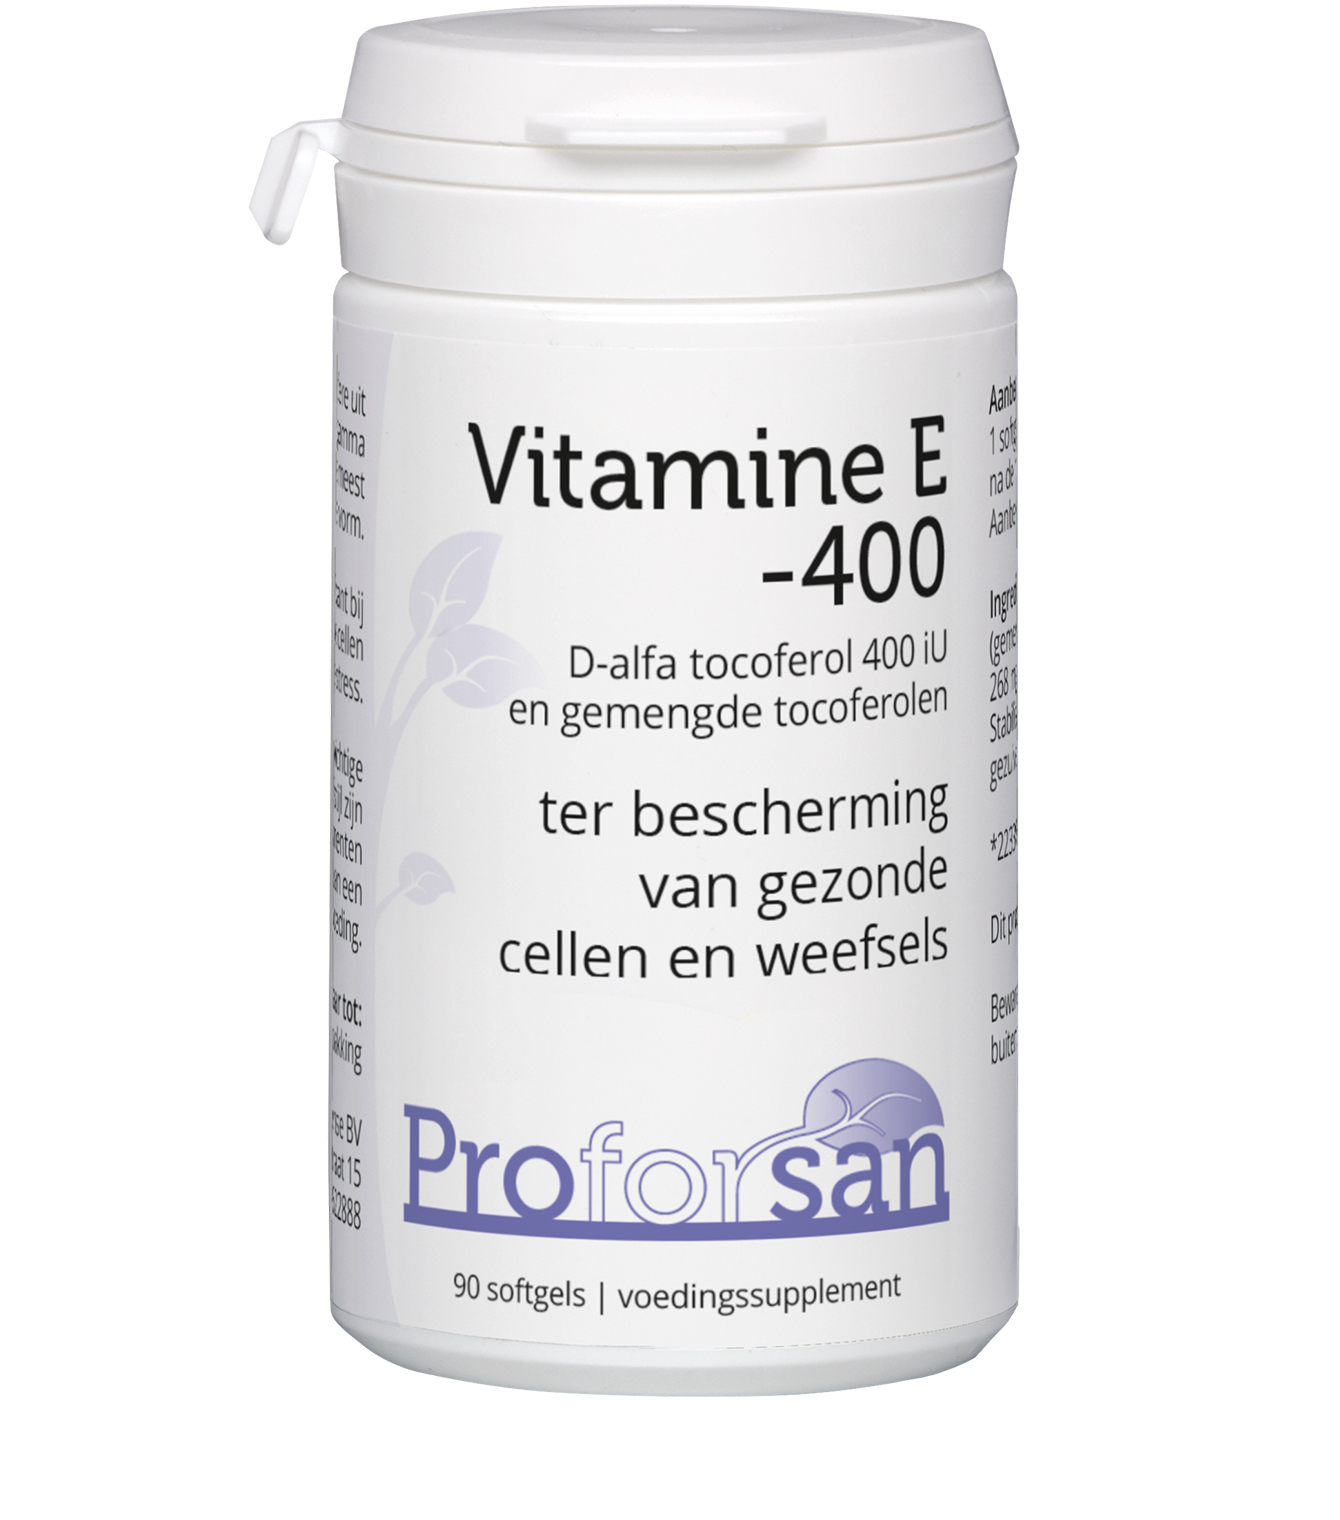 Proforsan Vitamine E-400 - 90 softgels